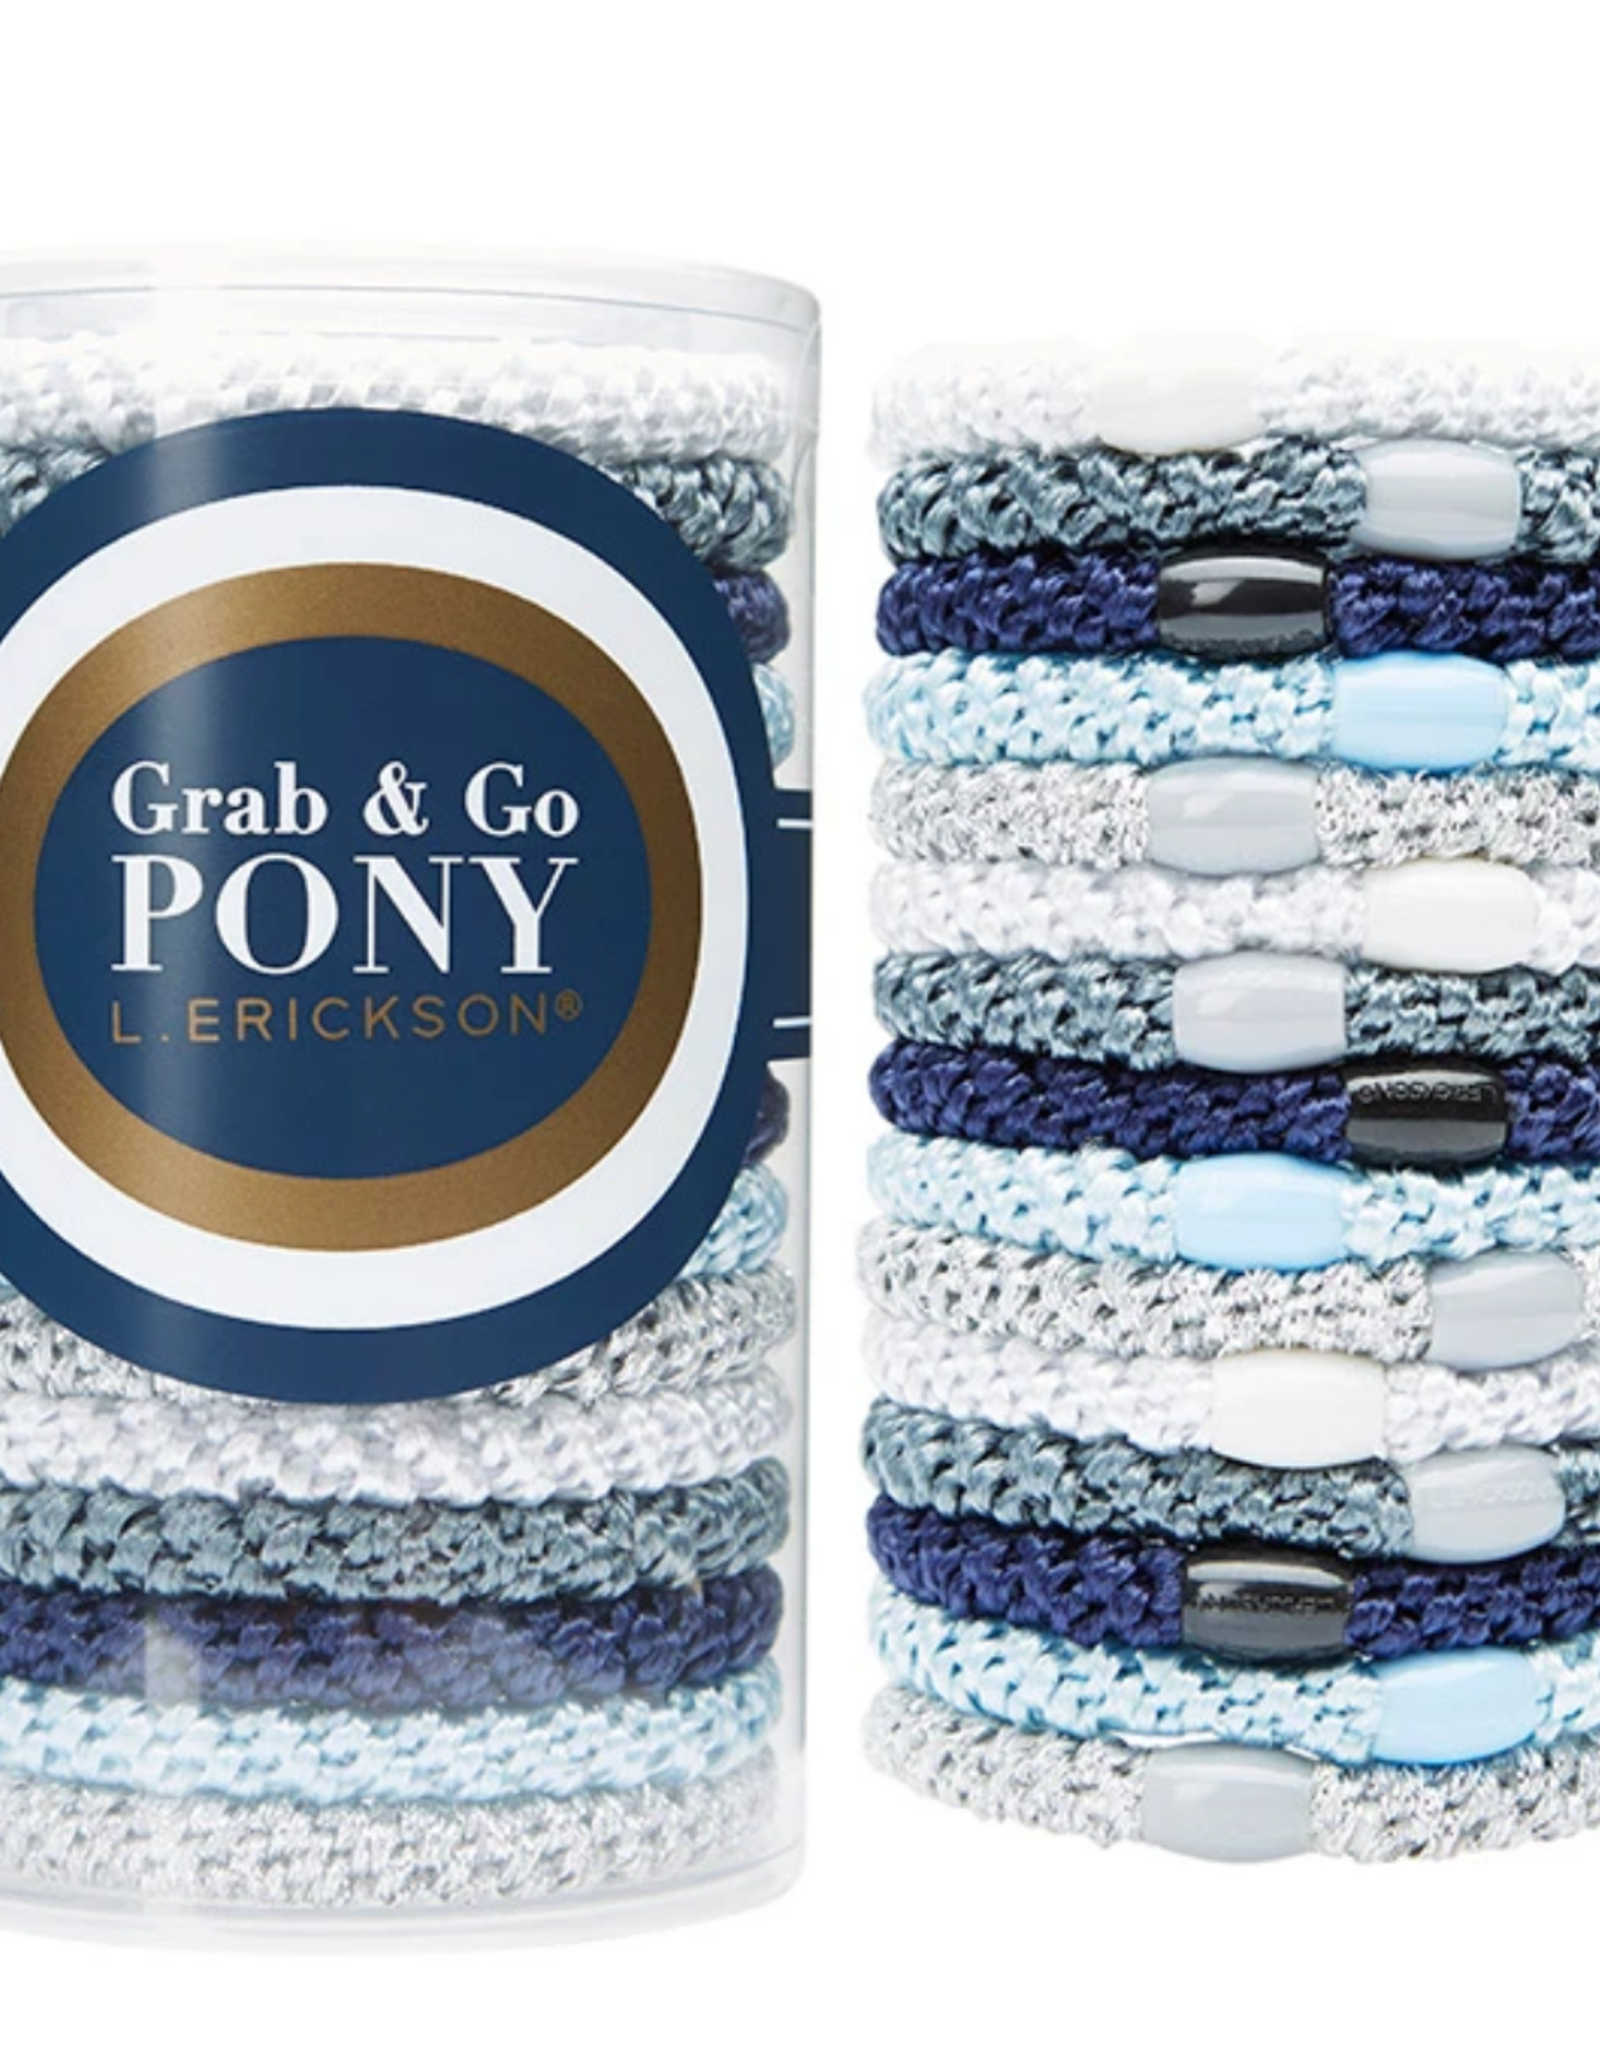 L. Erickson L. Erickson - Grab & Go Pony Tube Atlantic